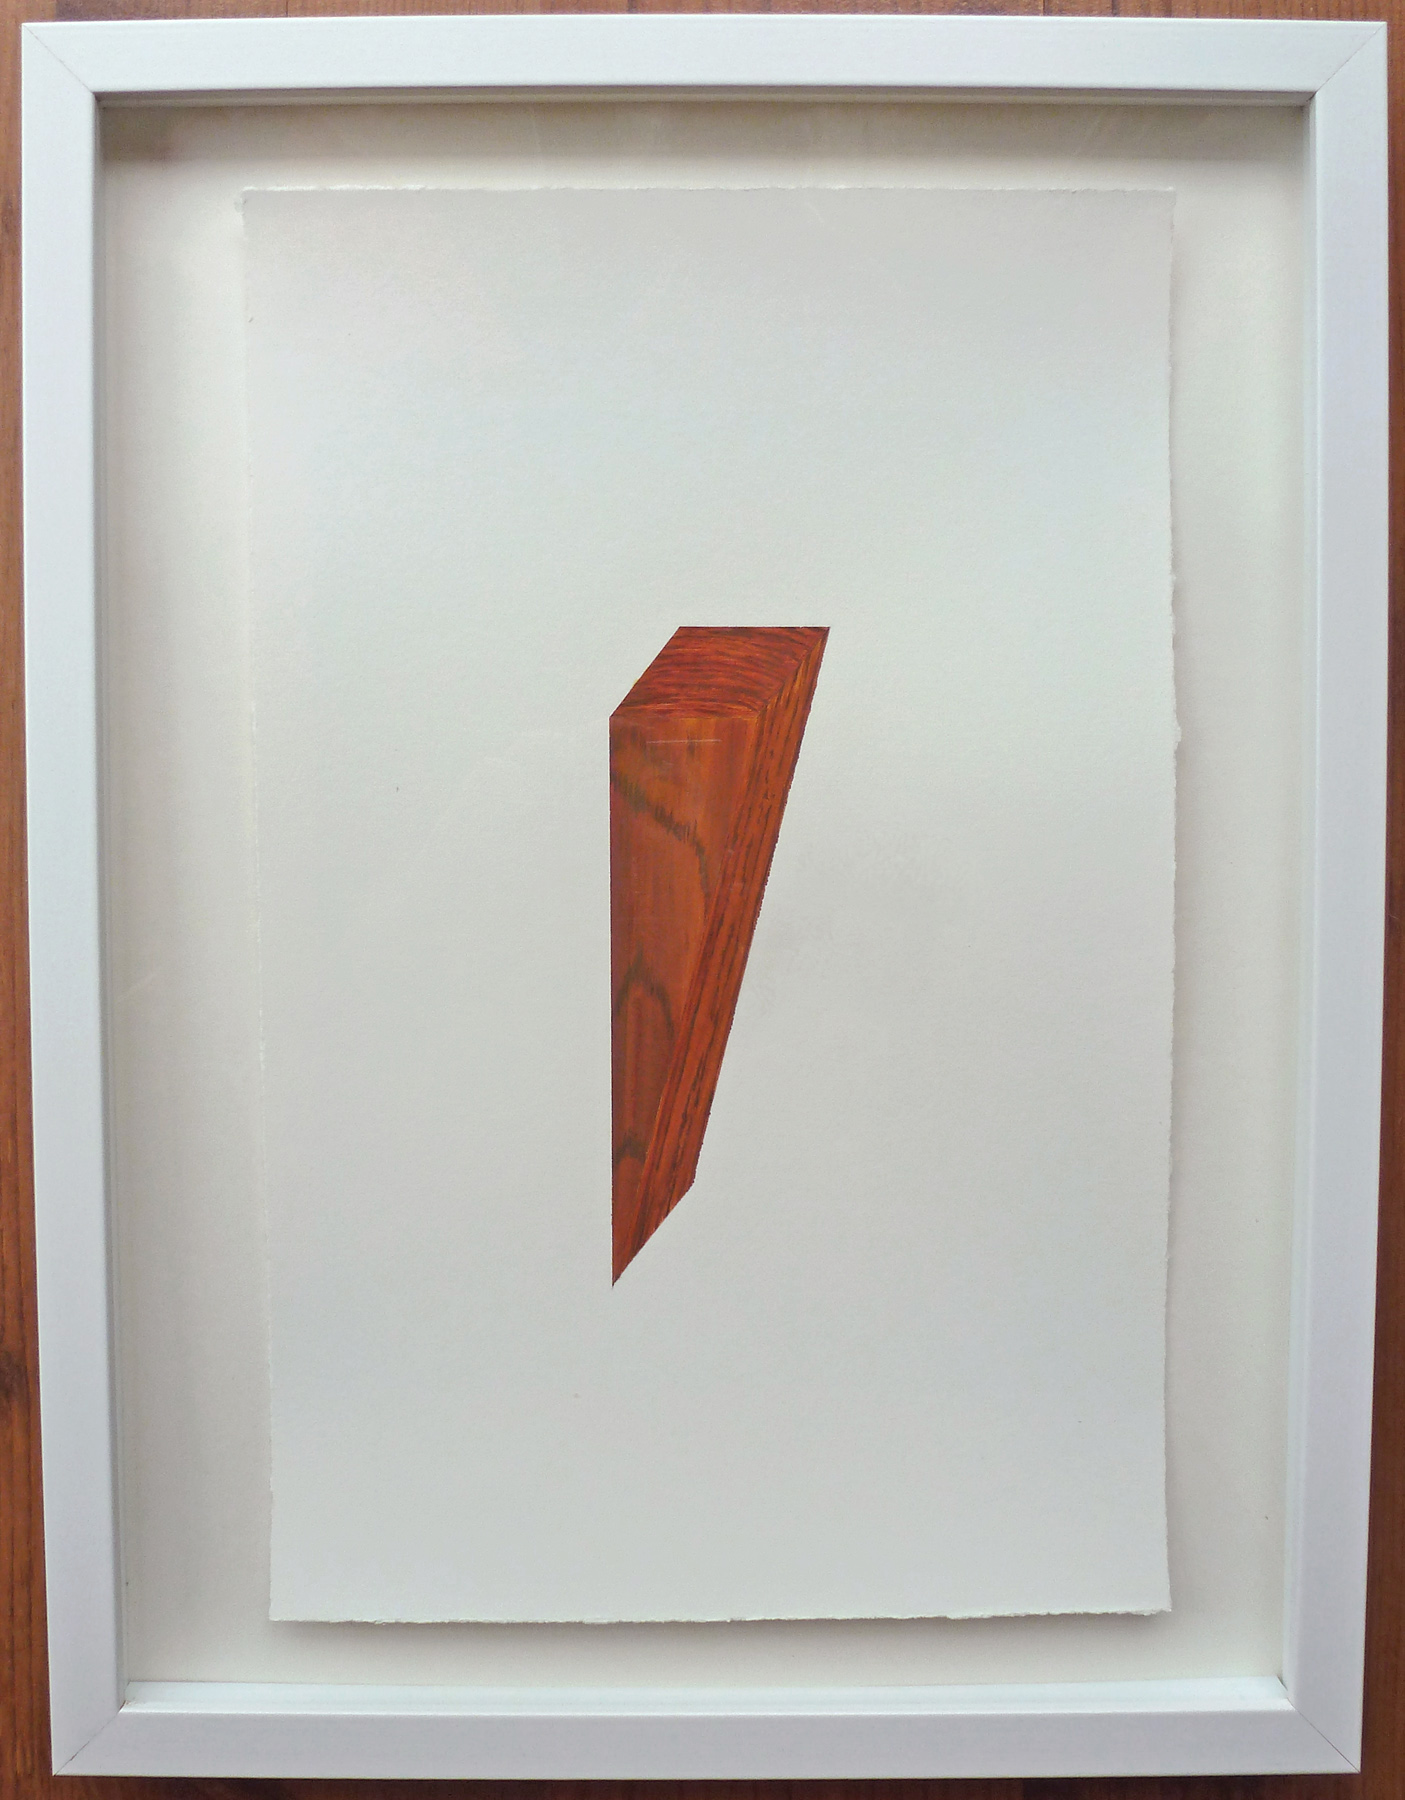 "Cedar Wedge #1 , 2013, acrylic on paper, 12.5"" x 16.5"" (framed)"